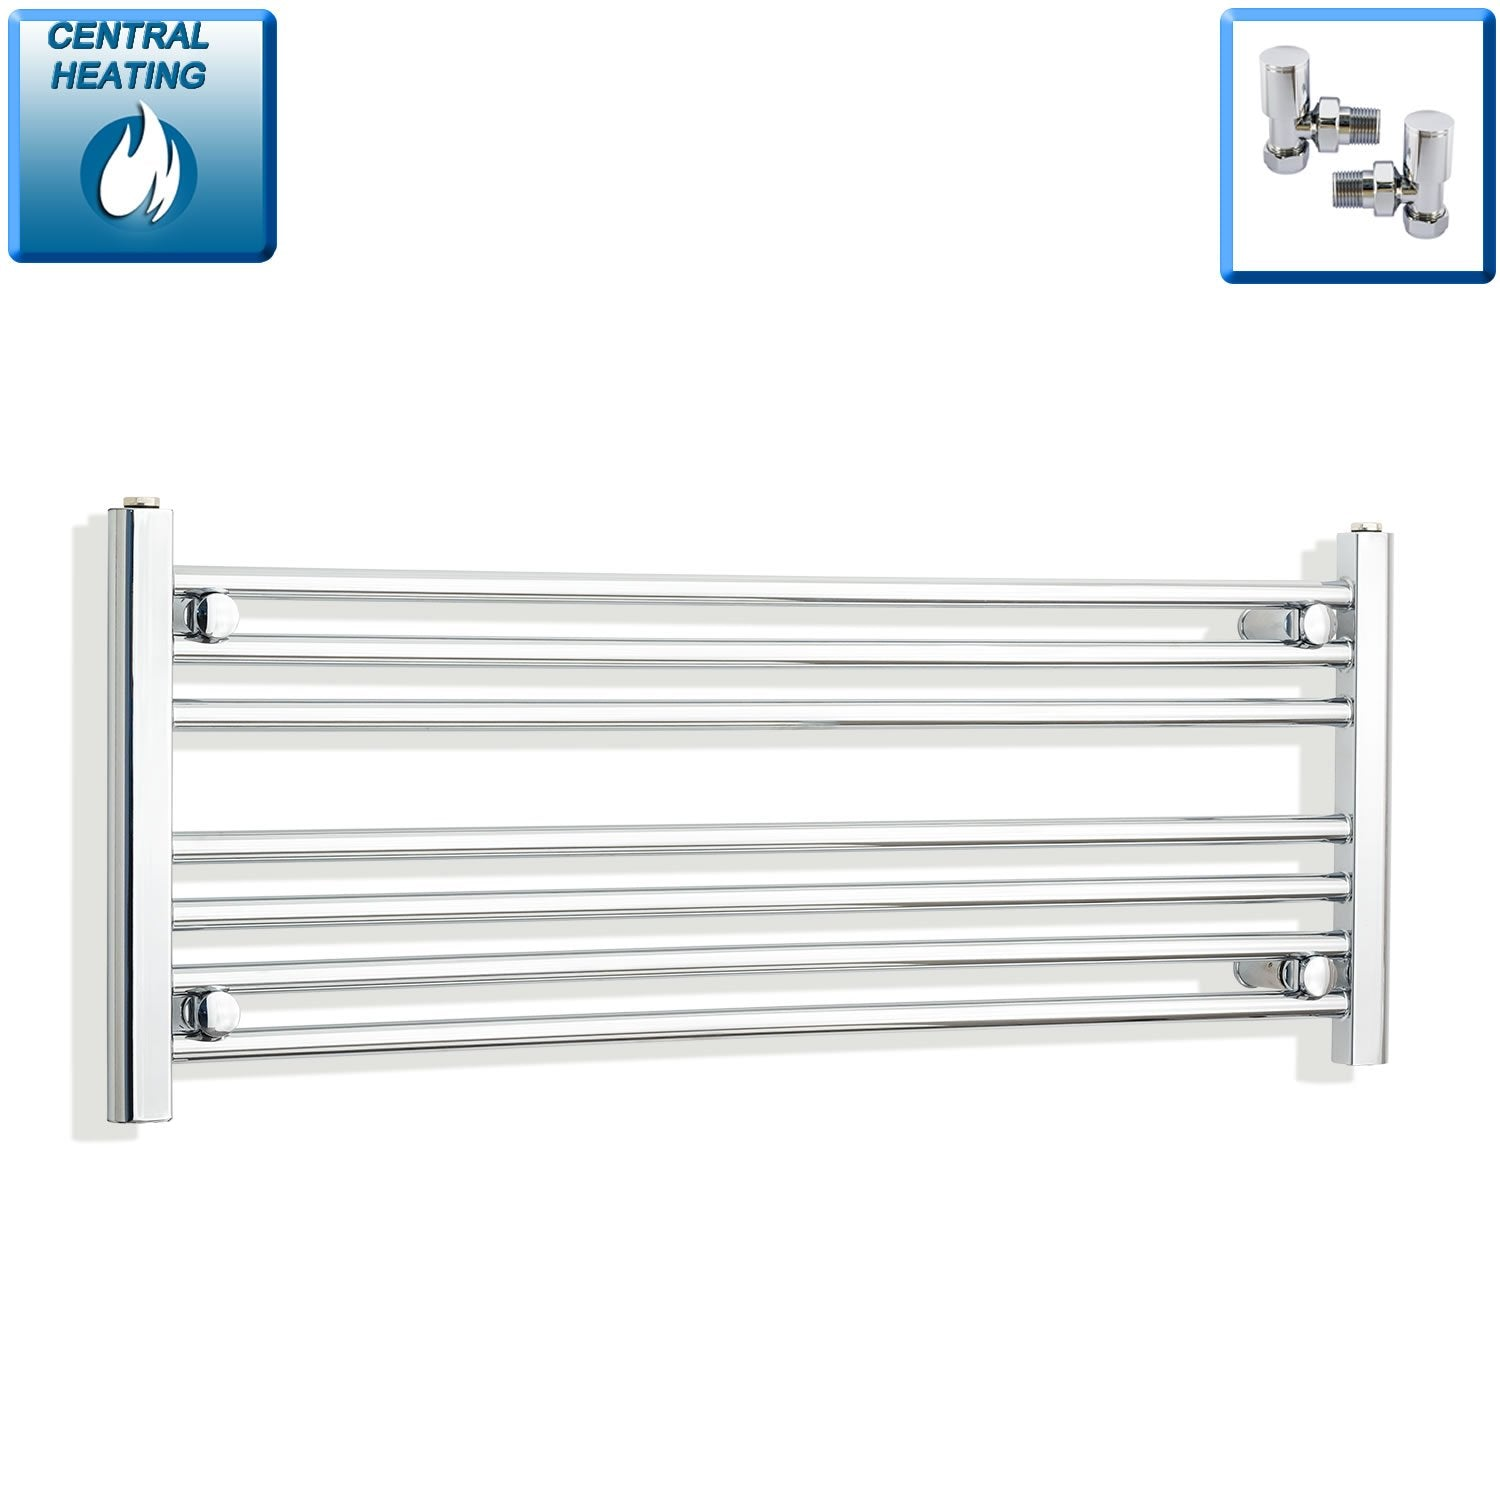 1100mm Wide 400mm High Flat Chrome Heated Towel Rail Radiator HTR,With Angled Valve